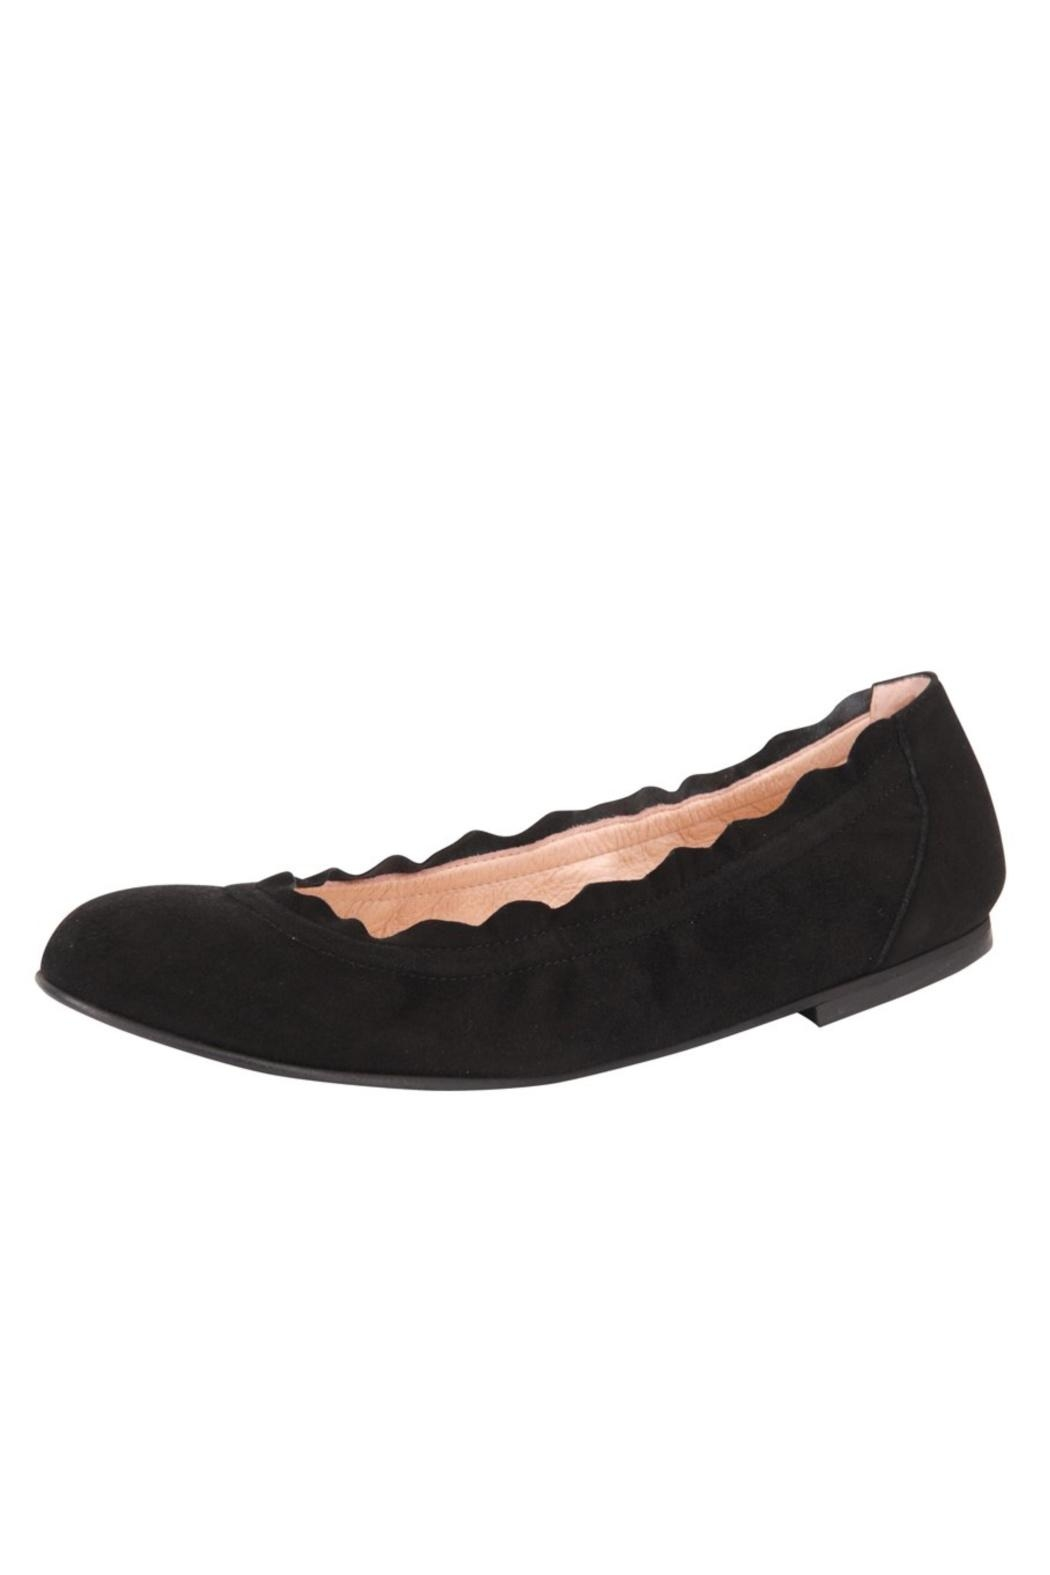 French Sole FS/NY Cuff Ballet Flats - Front Full Image